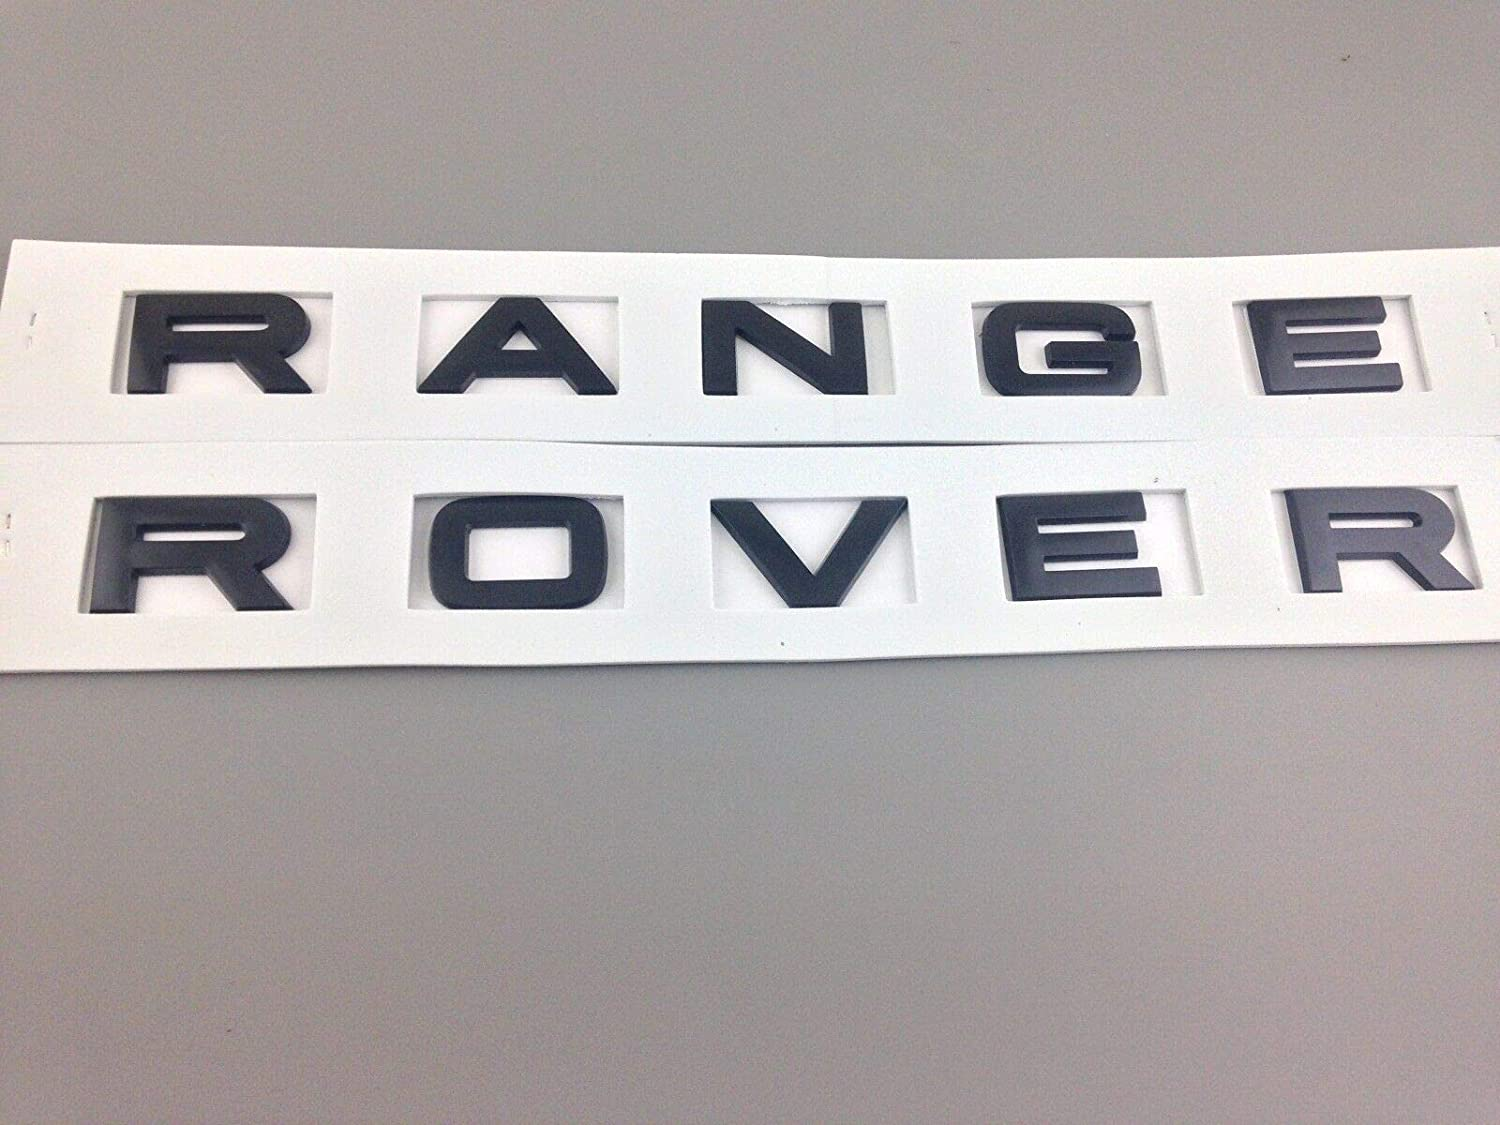 1PC New FOR R@nge Rover Black//SILVER LETTERS HOOD TRUNK TAILGATE EMBLEM BADGE Gloss black